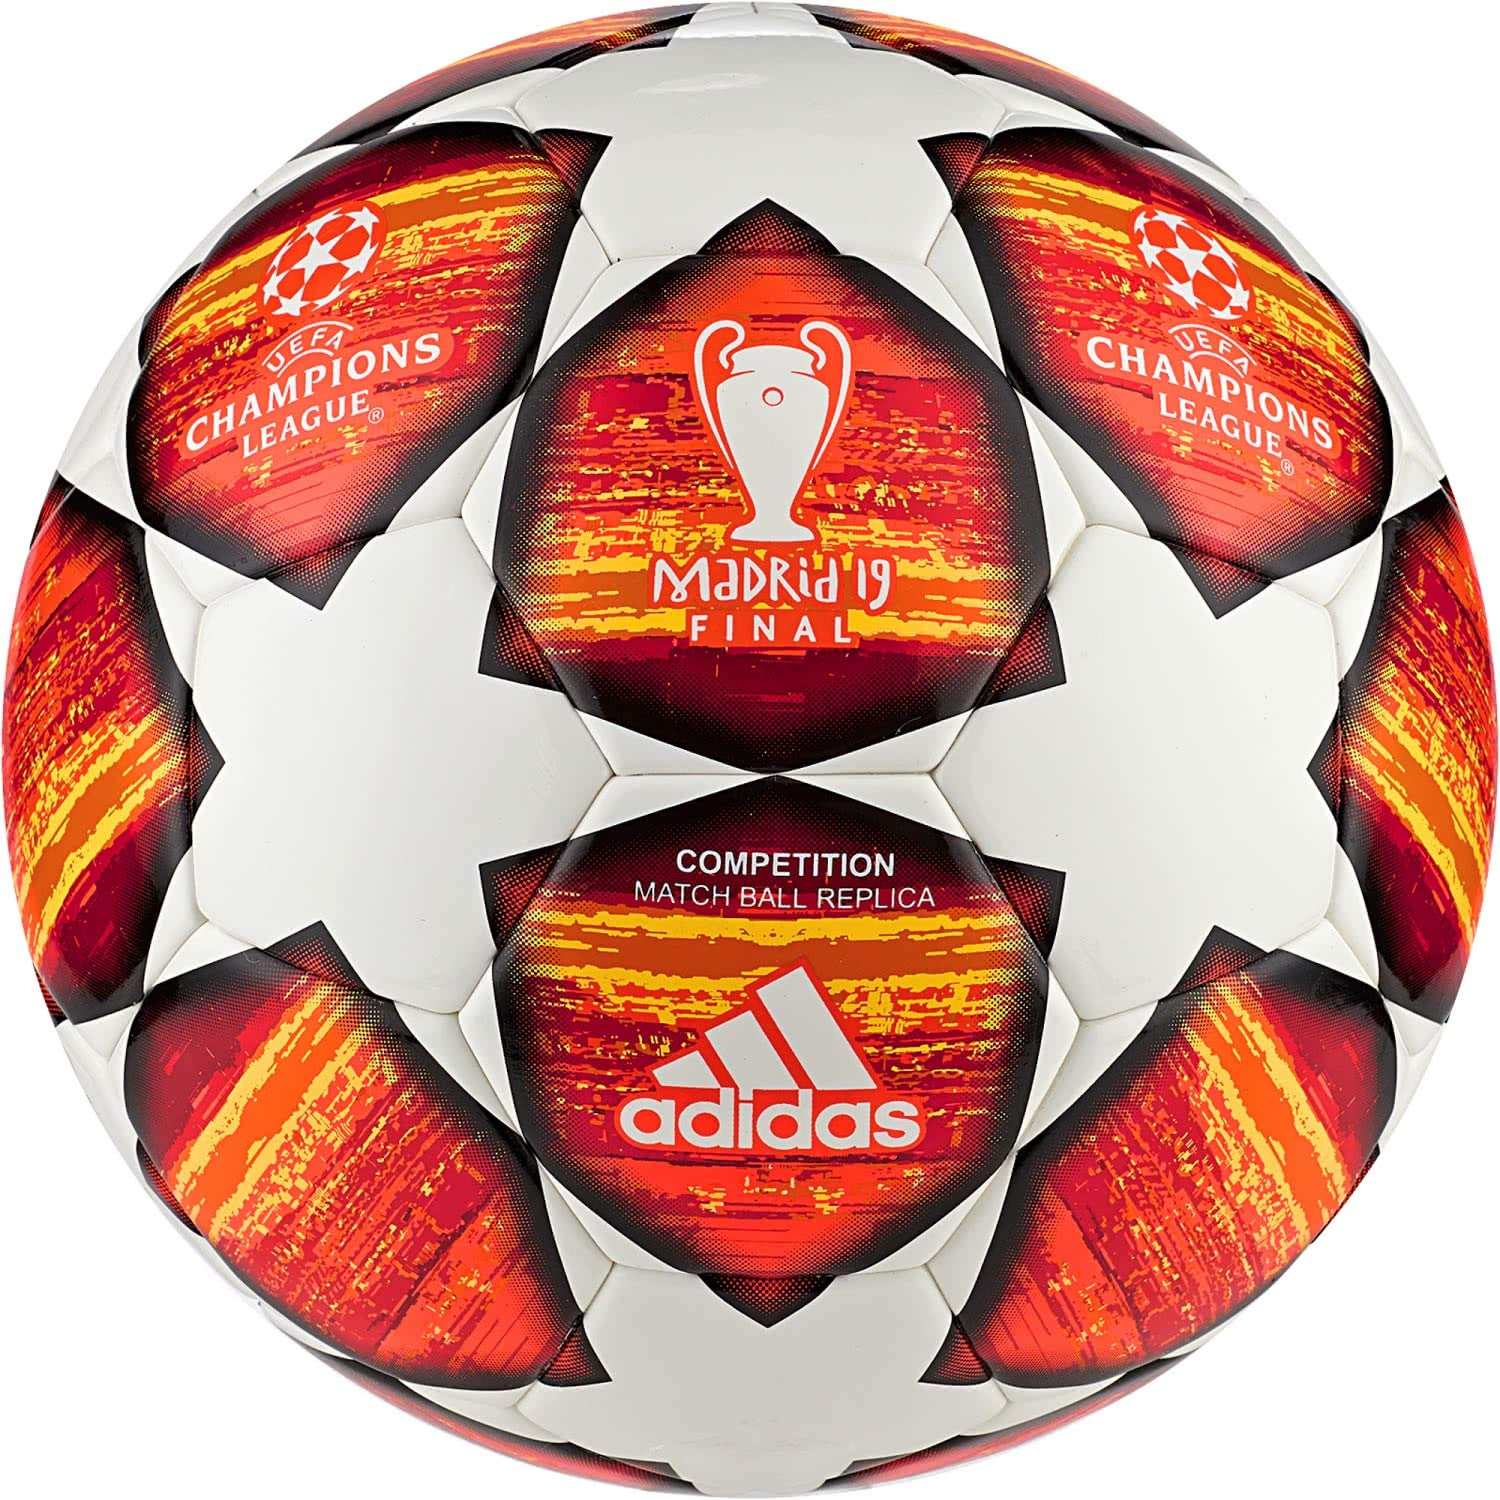 Adidas 2019 Champions League Madrid Final Football, Competition Match Ball Replica, Size 5